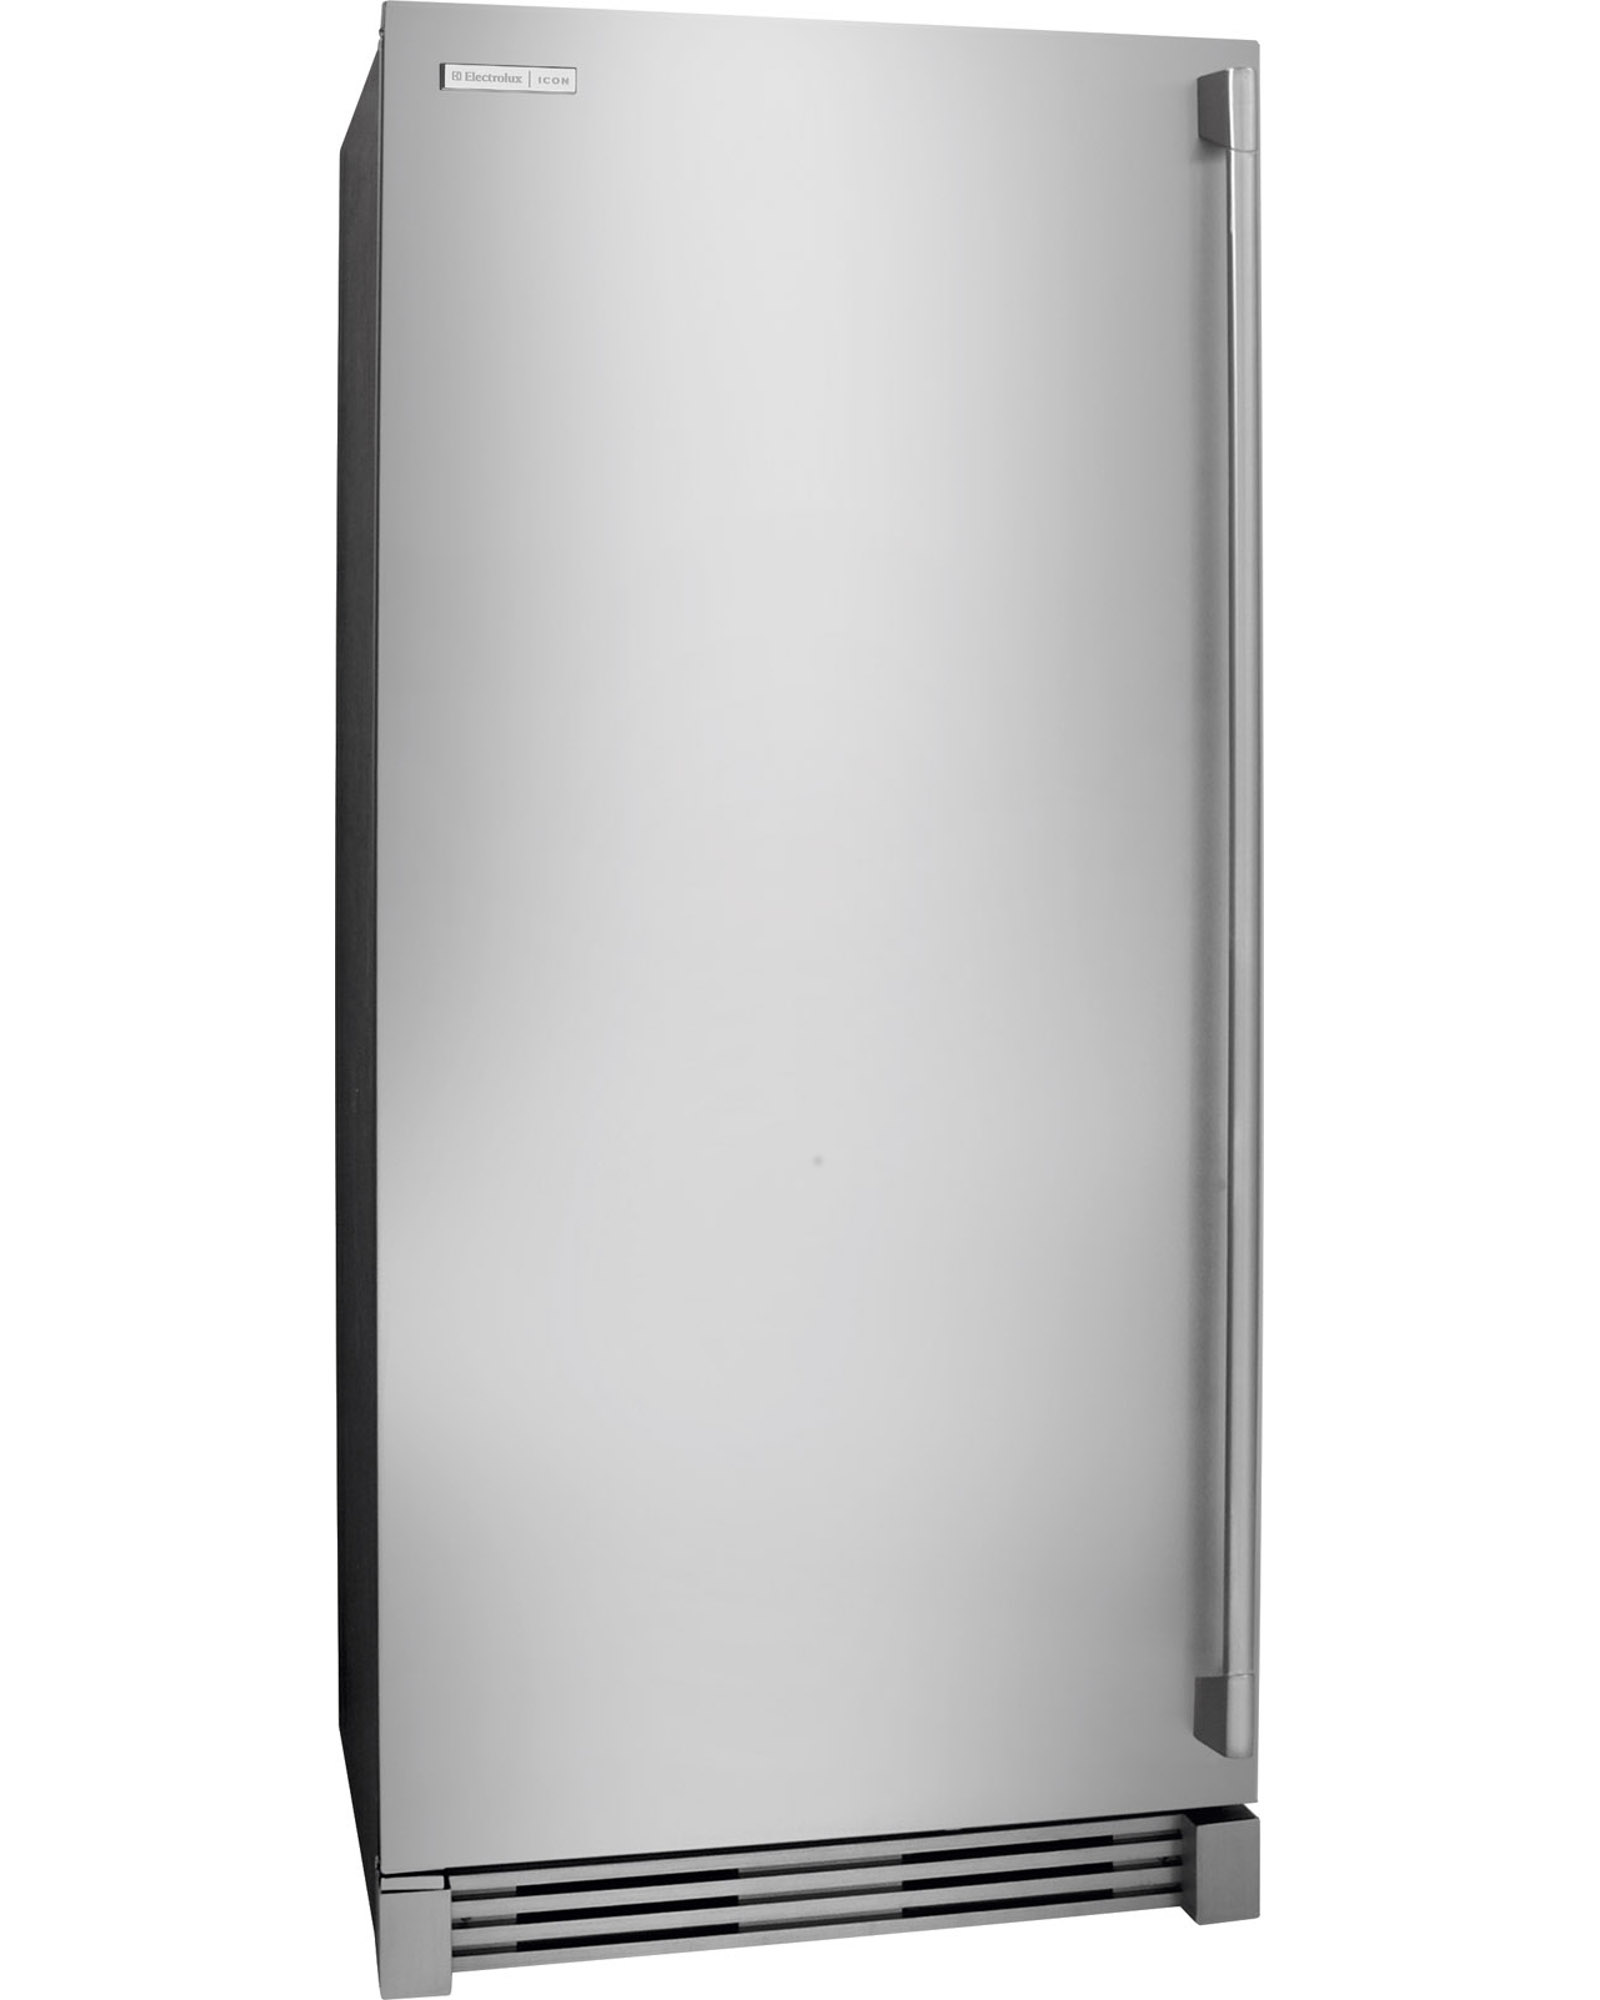 Electrolux E32AF85PQS 18.6 cu. ft. Upright Freezer - Stainless Steel E32AR85PQS